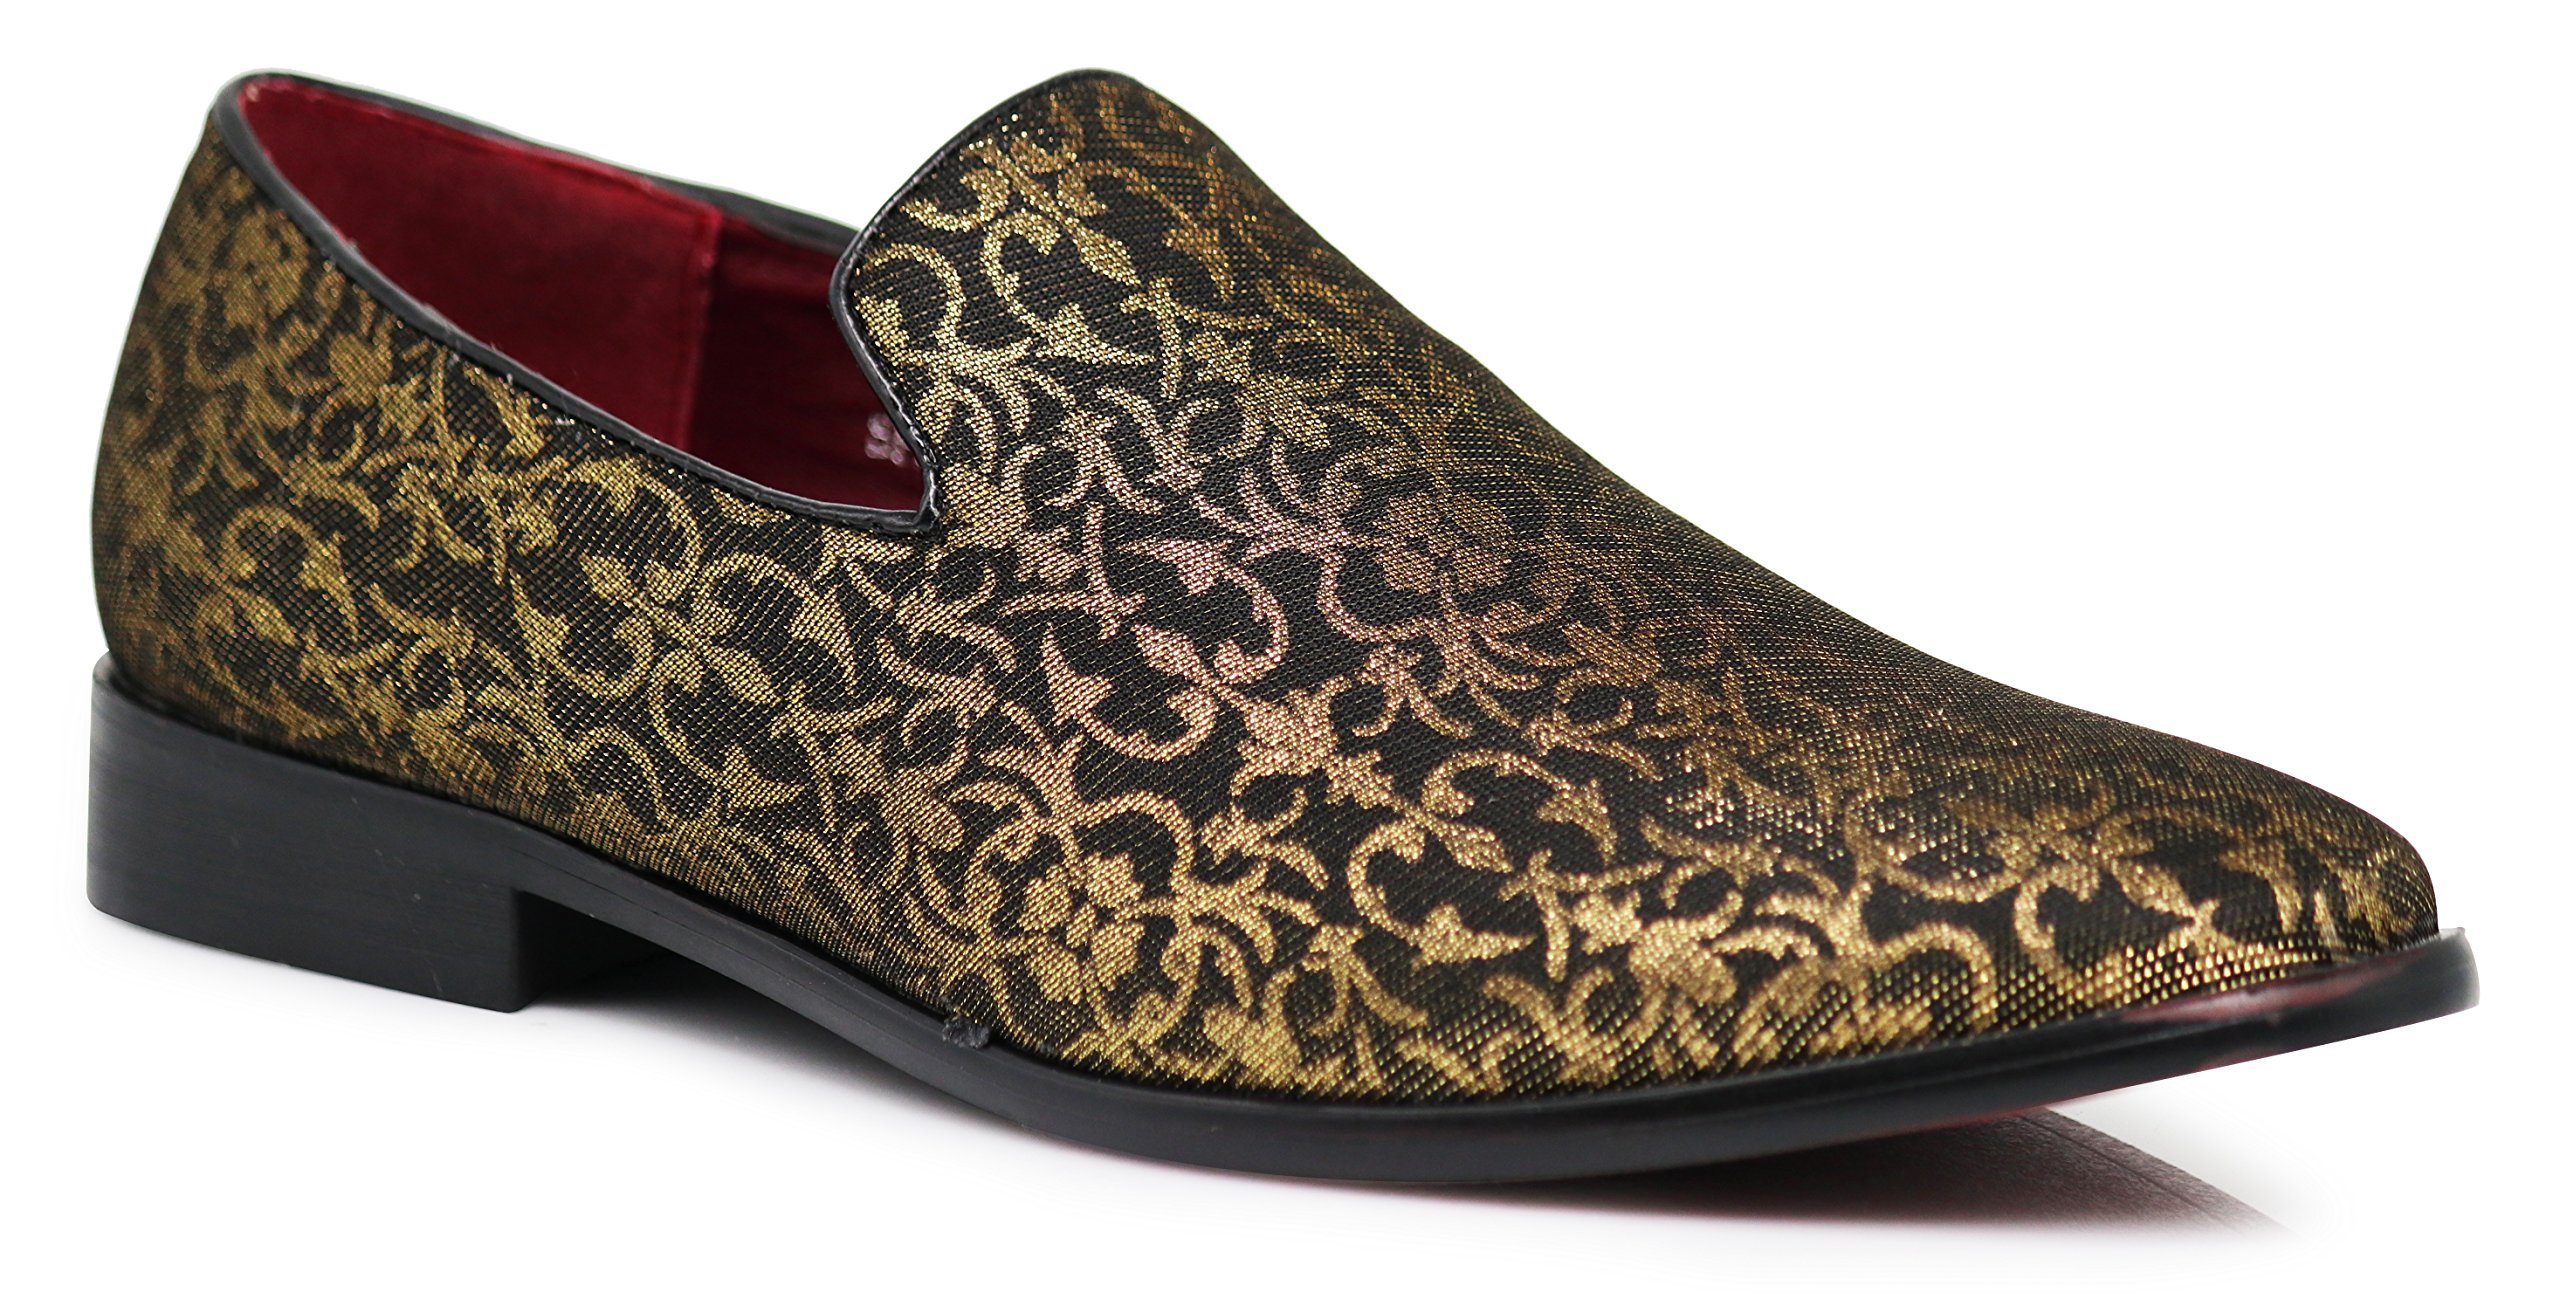 Enzo Romeo Spg Men's Vintage Satin Silky Floral Print Dress Loafers Slip On Shoes Classic Tuxedo Dress Shoes (11, Gold)